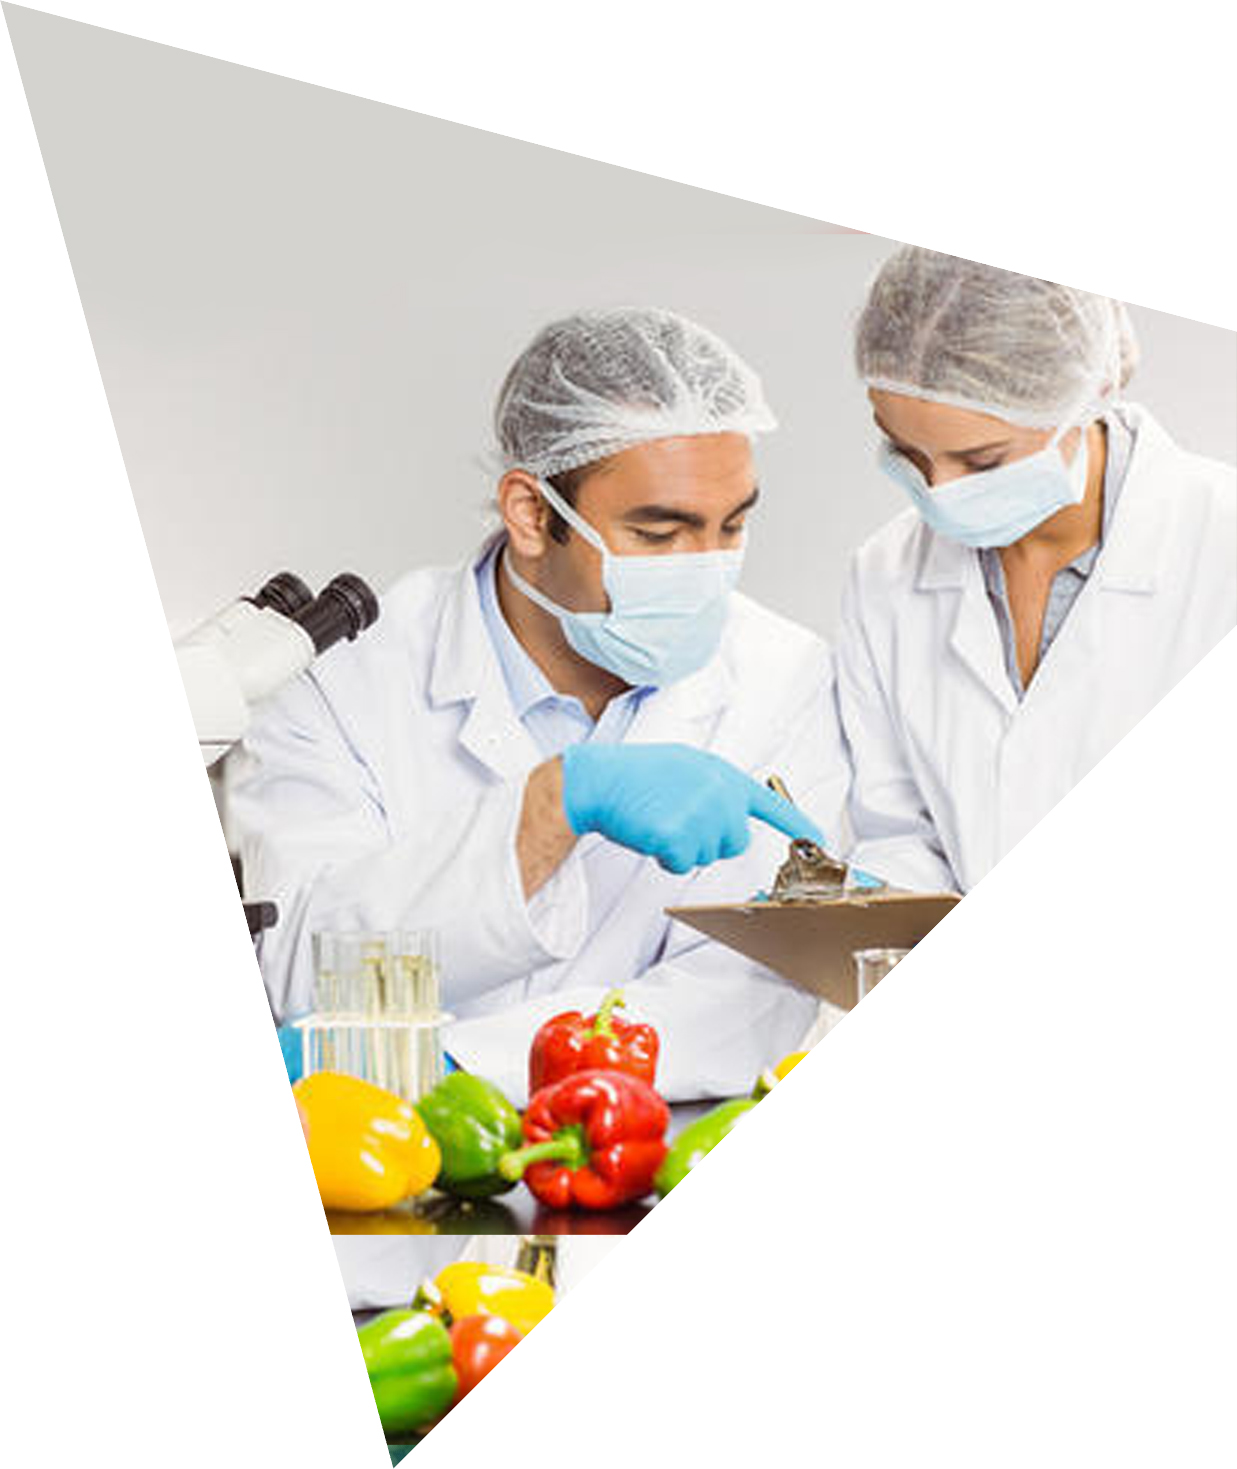 Enhanced exports to US and other markets – facilitated by strengthened food safety compliance